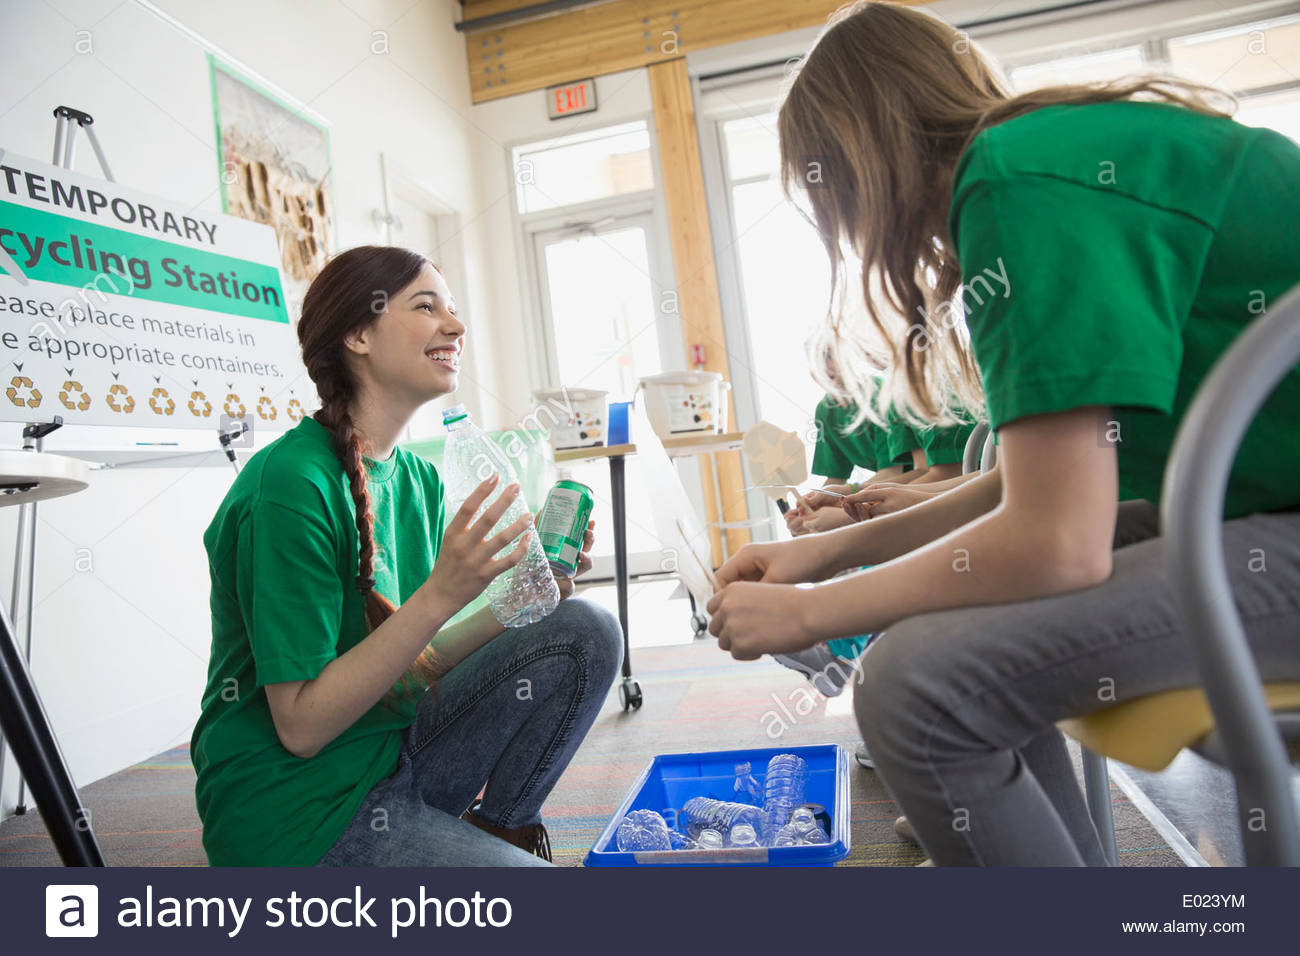 Mentor teaching students to recycle in classroom - Stock Image